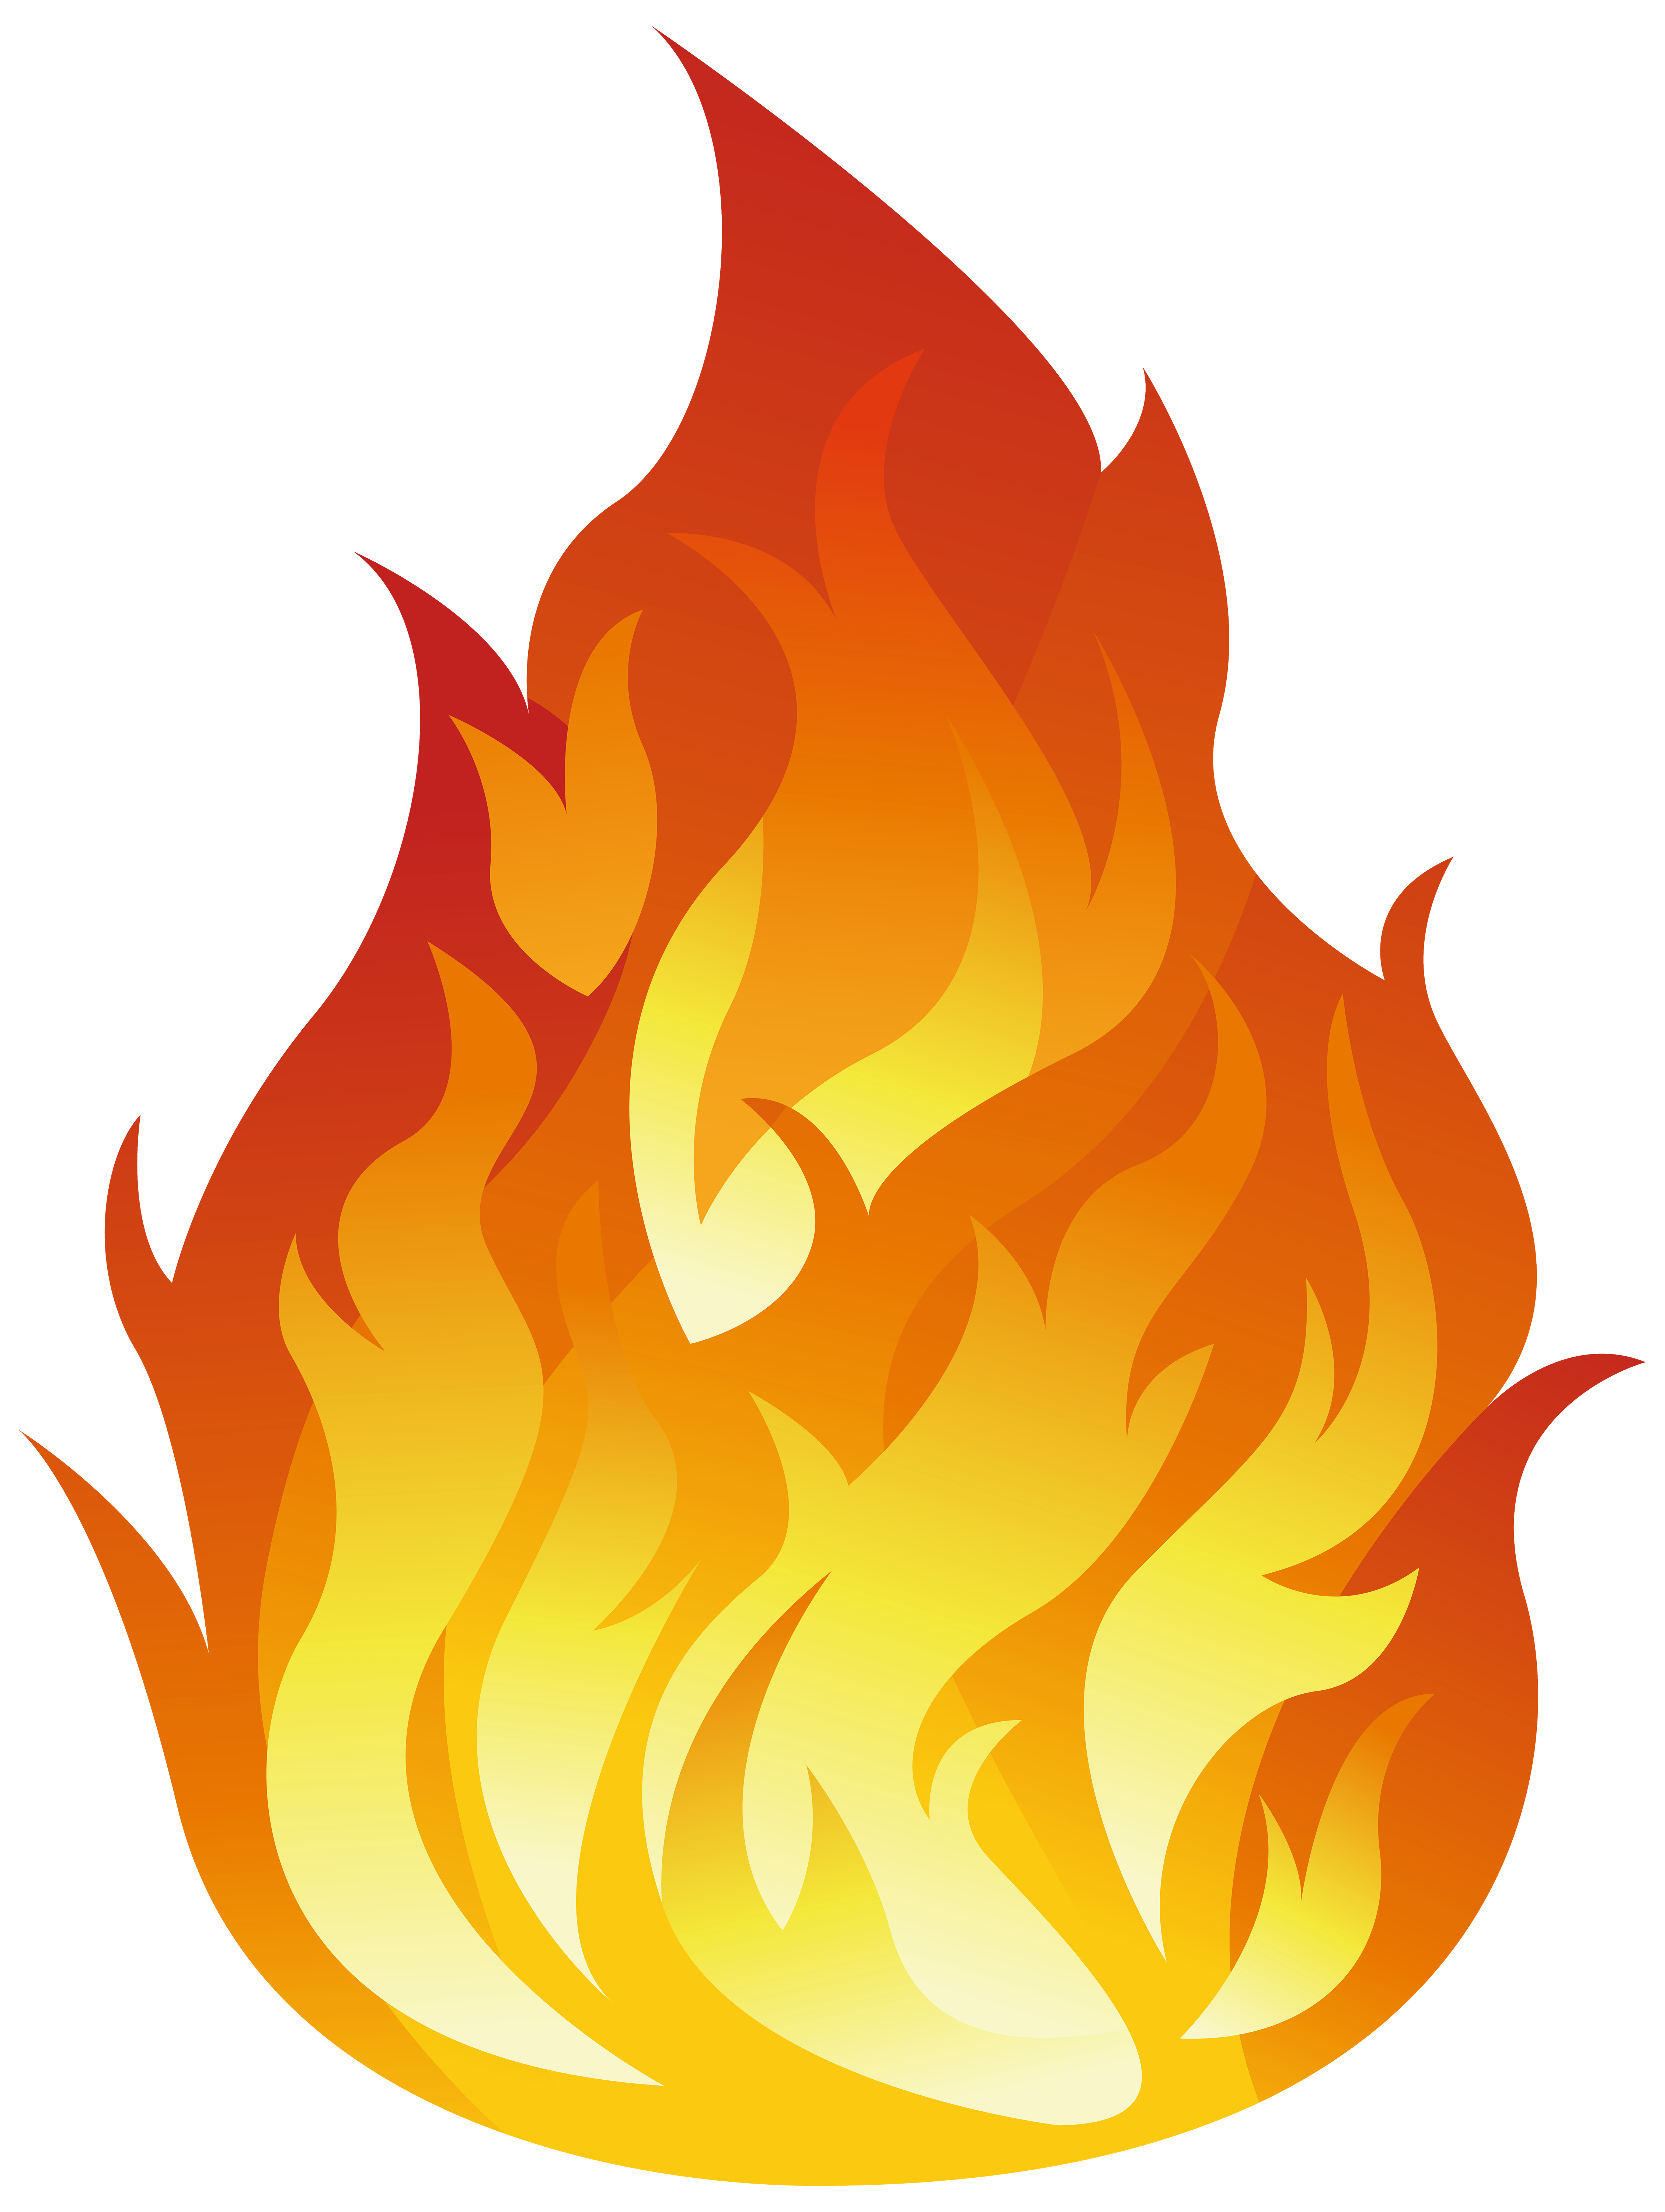 Clipart Fire at GetDrawings.com | Free for personal use Clipart Fire ... image transparent stock